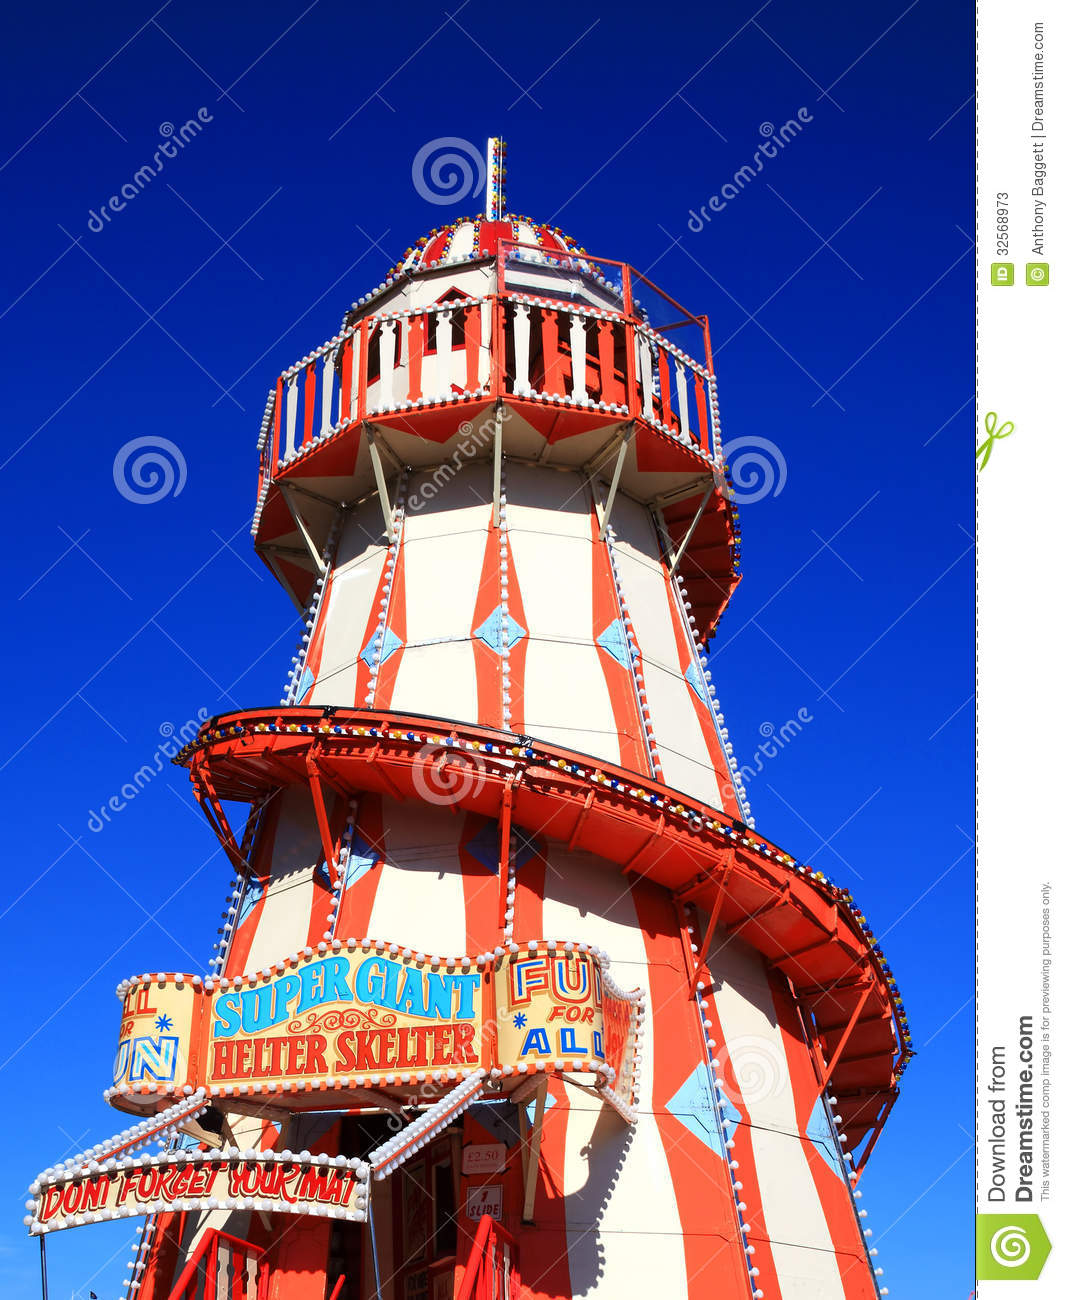 Victorian helter skelter fairground amusement park ride.